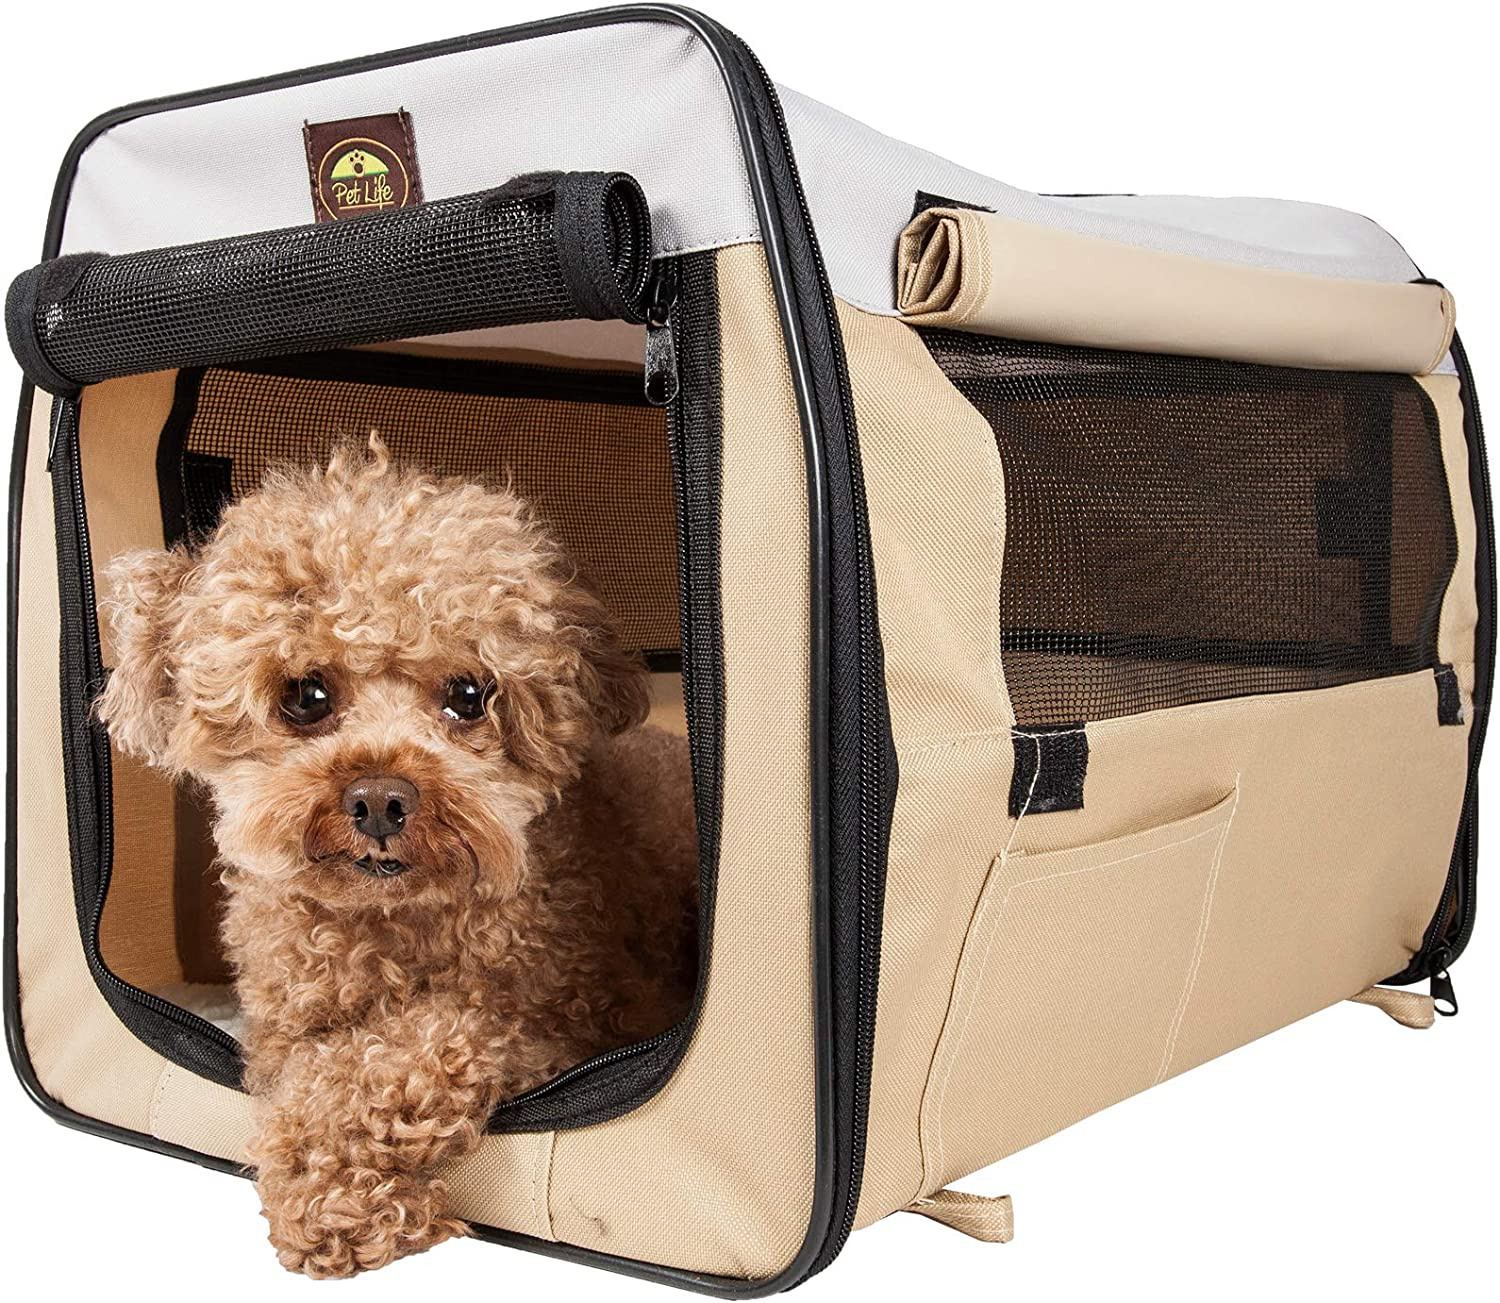 Folding Zippered Lightweight Easy Folding Pet Crate